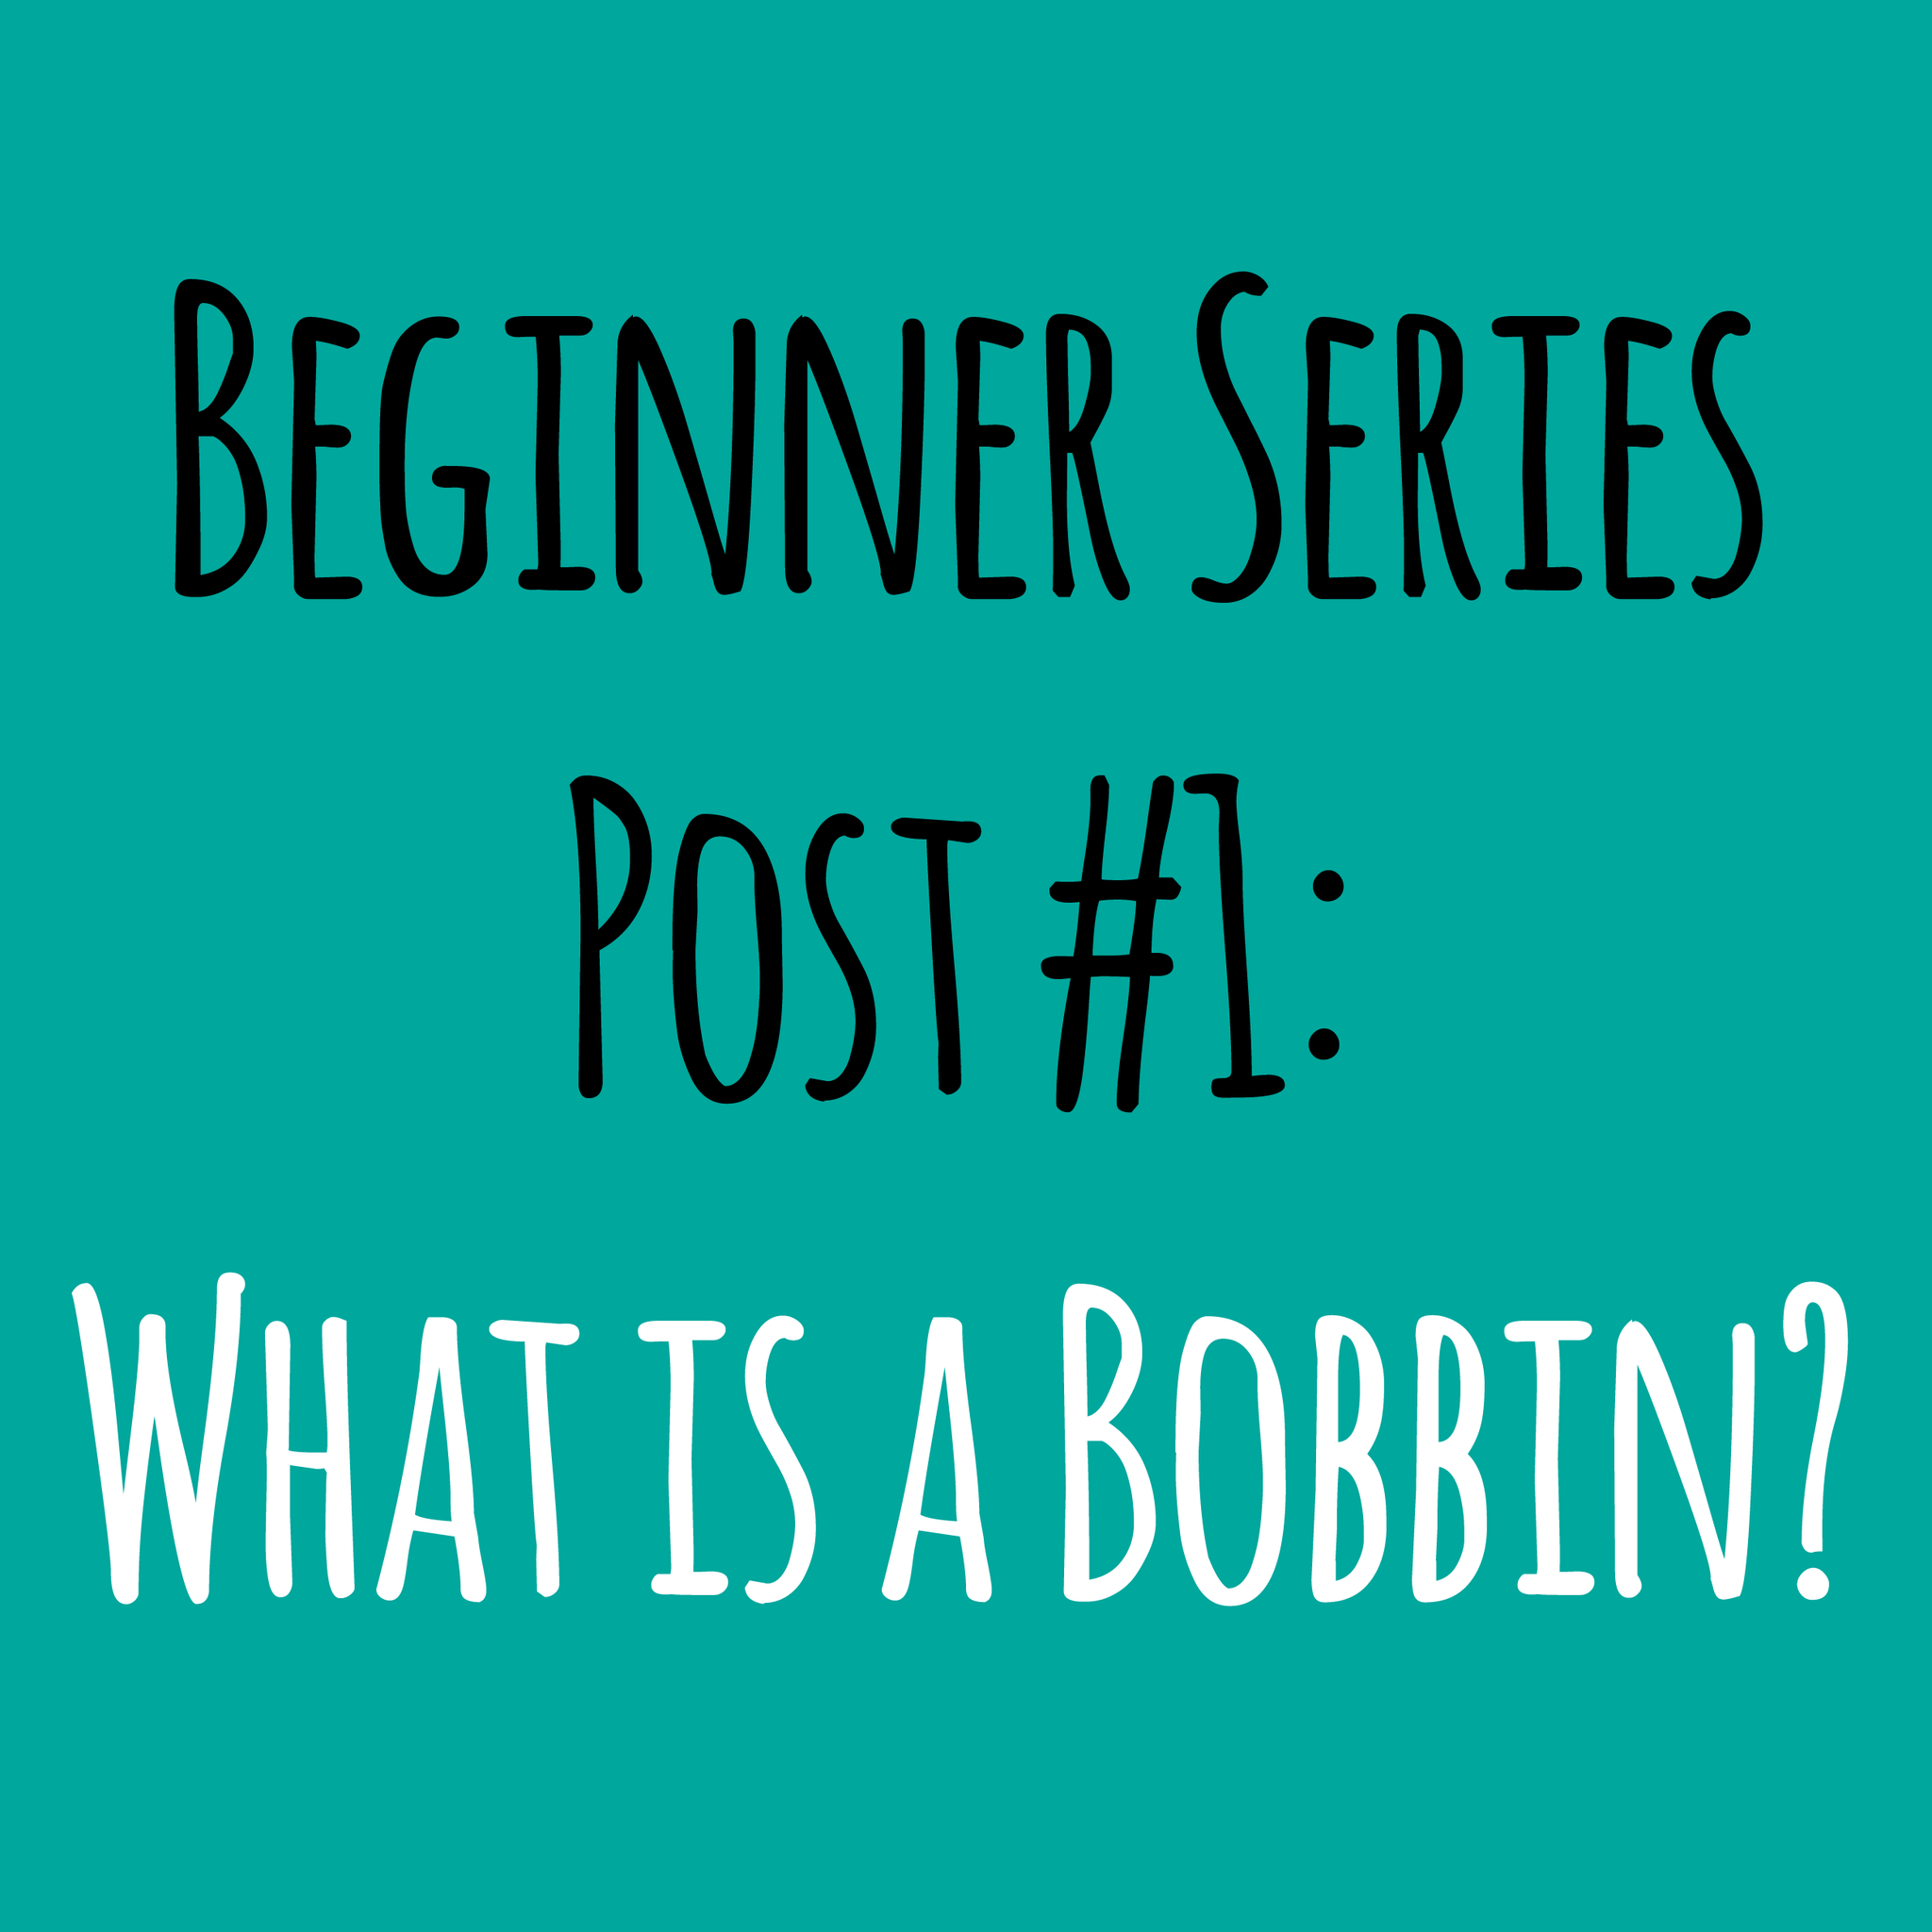 What is a bobbin?